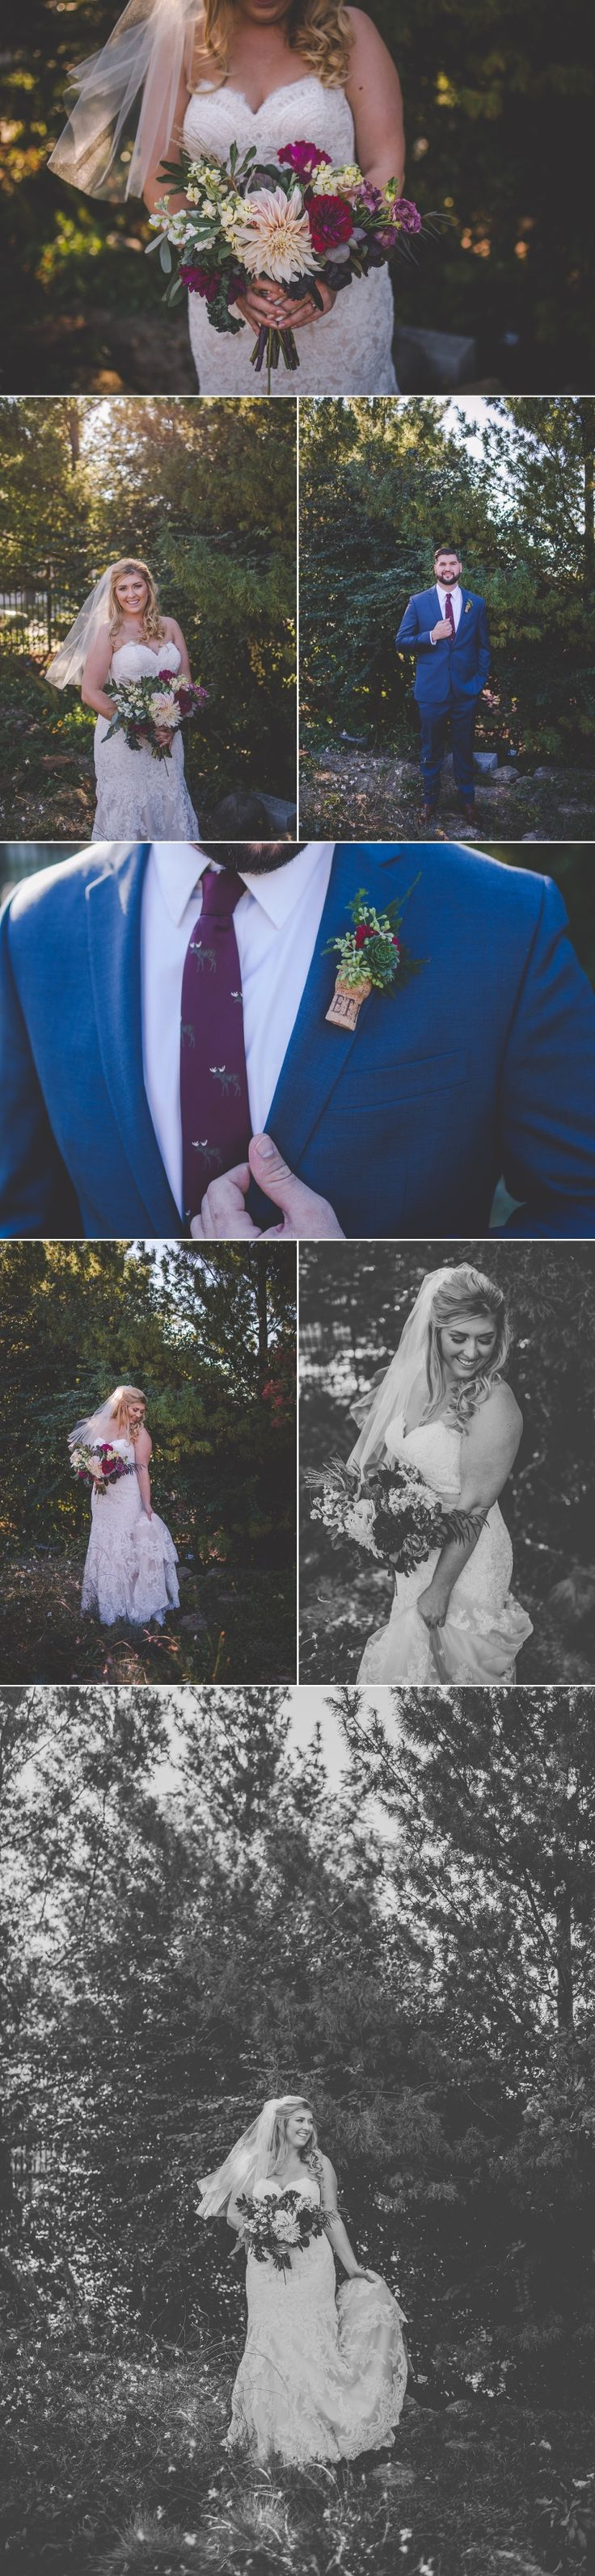 Absolutely adored Kait & Chris' Wedding downtown Madison, Wisconsin. Fall details and beautiful weather all came together for an adorable couple.